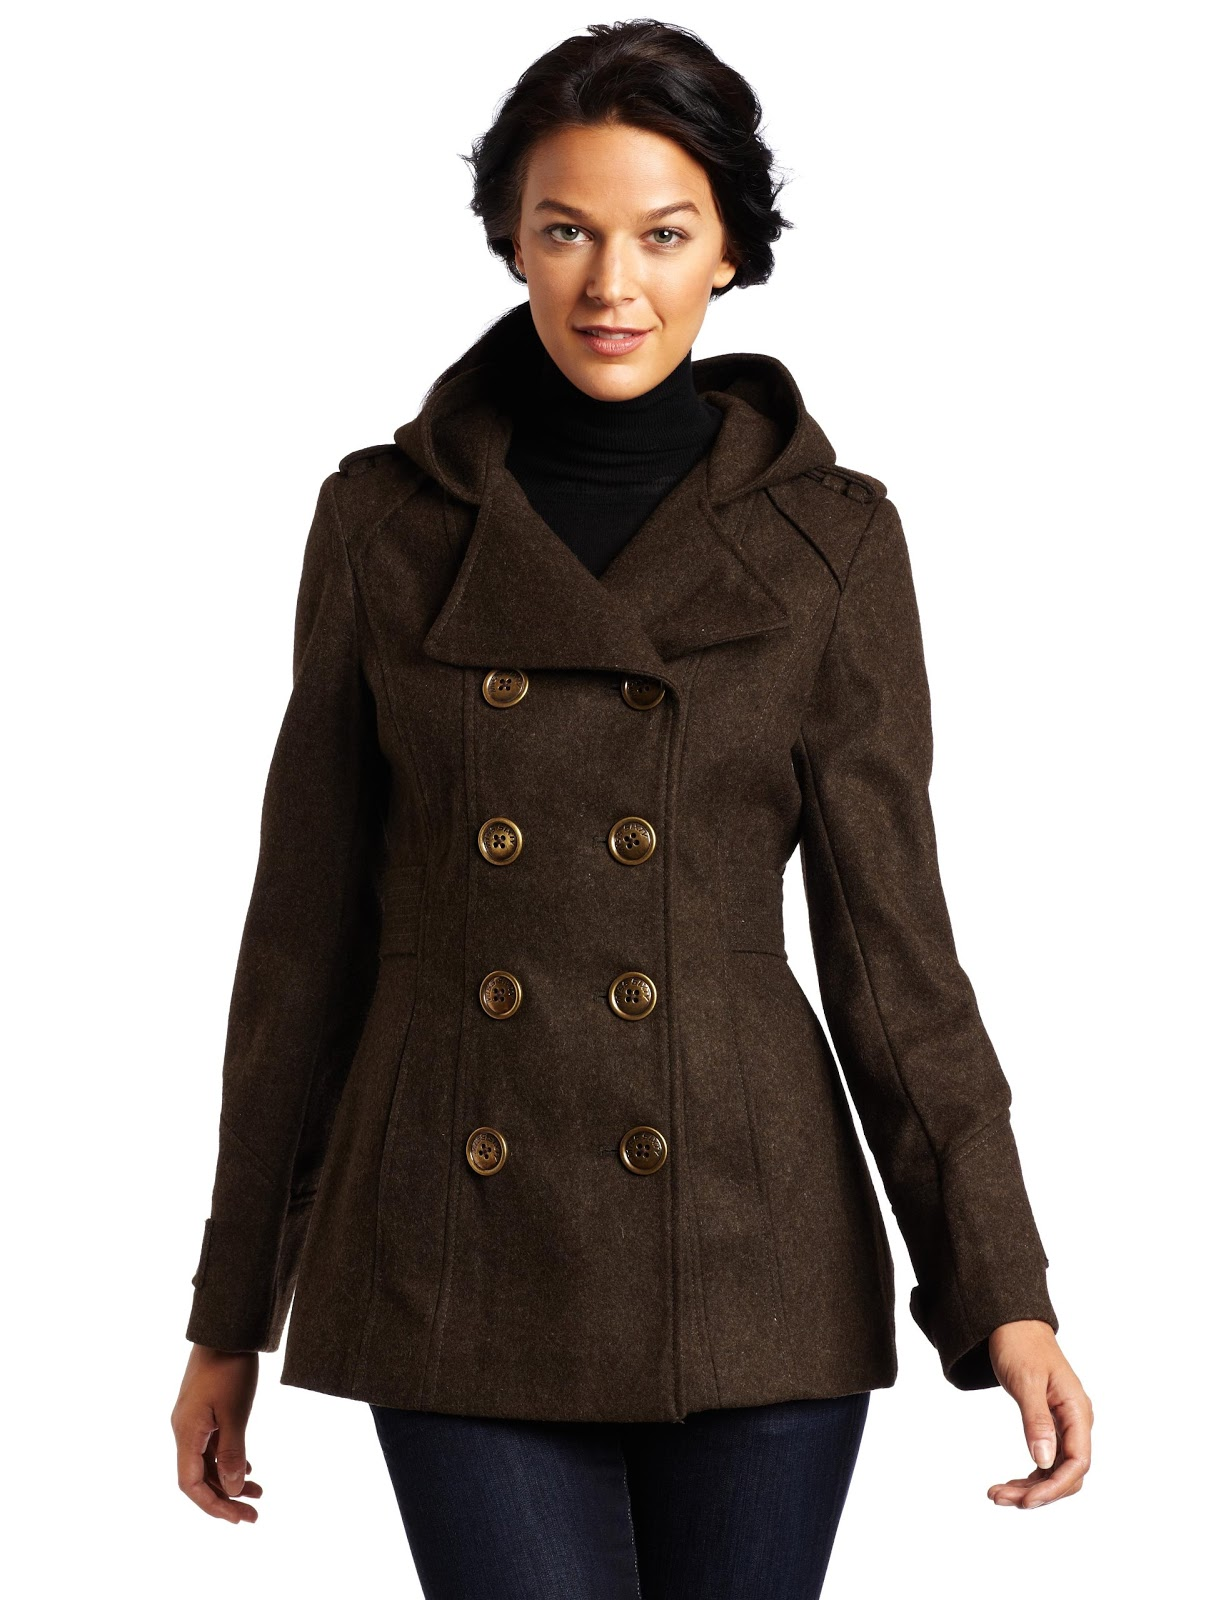 Lime Green Pea Coats: Miss Sixty Womens Double Breasted Hooded Peacoat